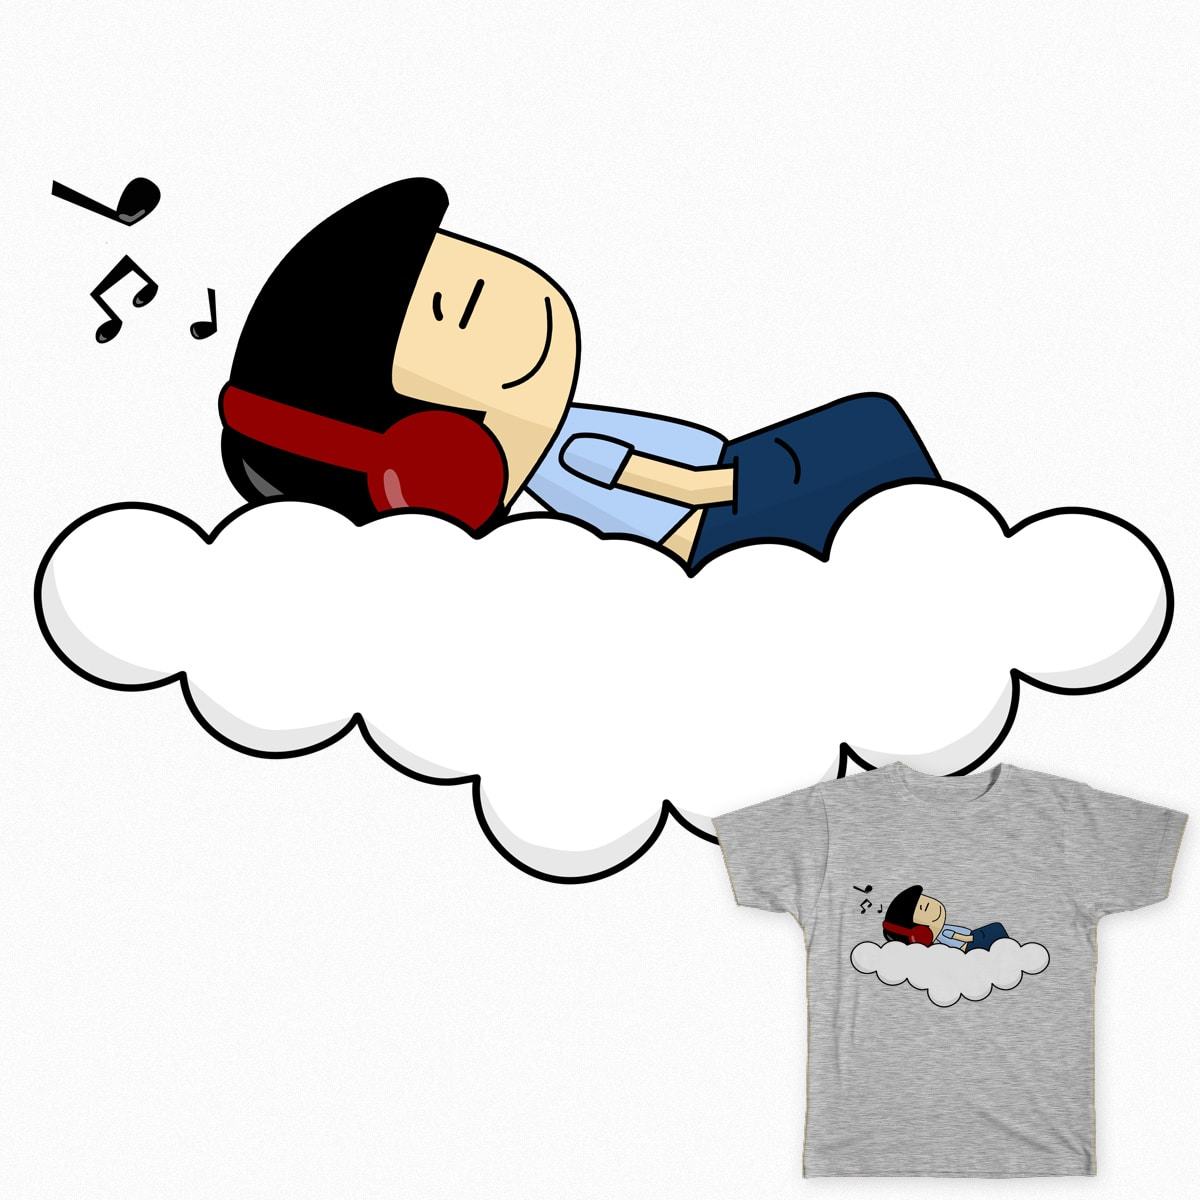 On Clouds by ohrie on Threadless